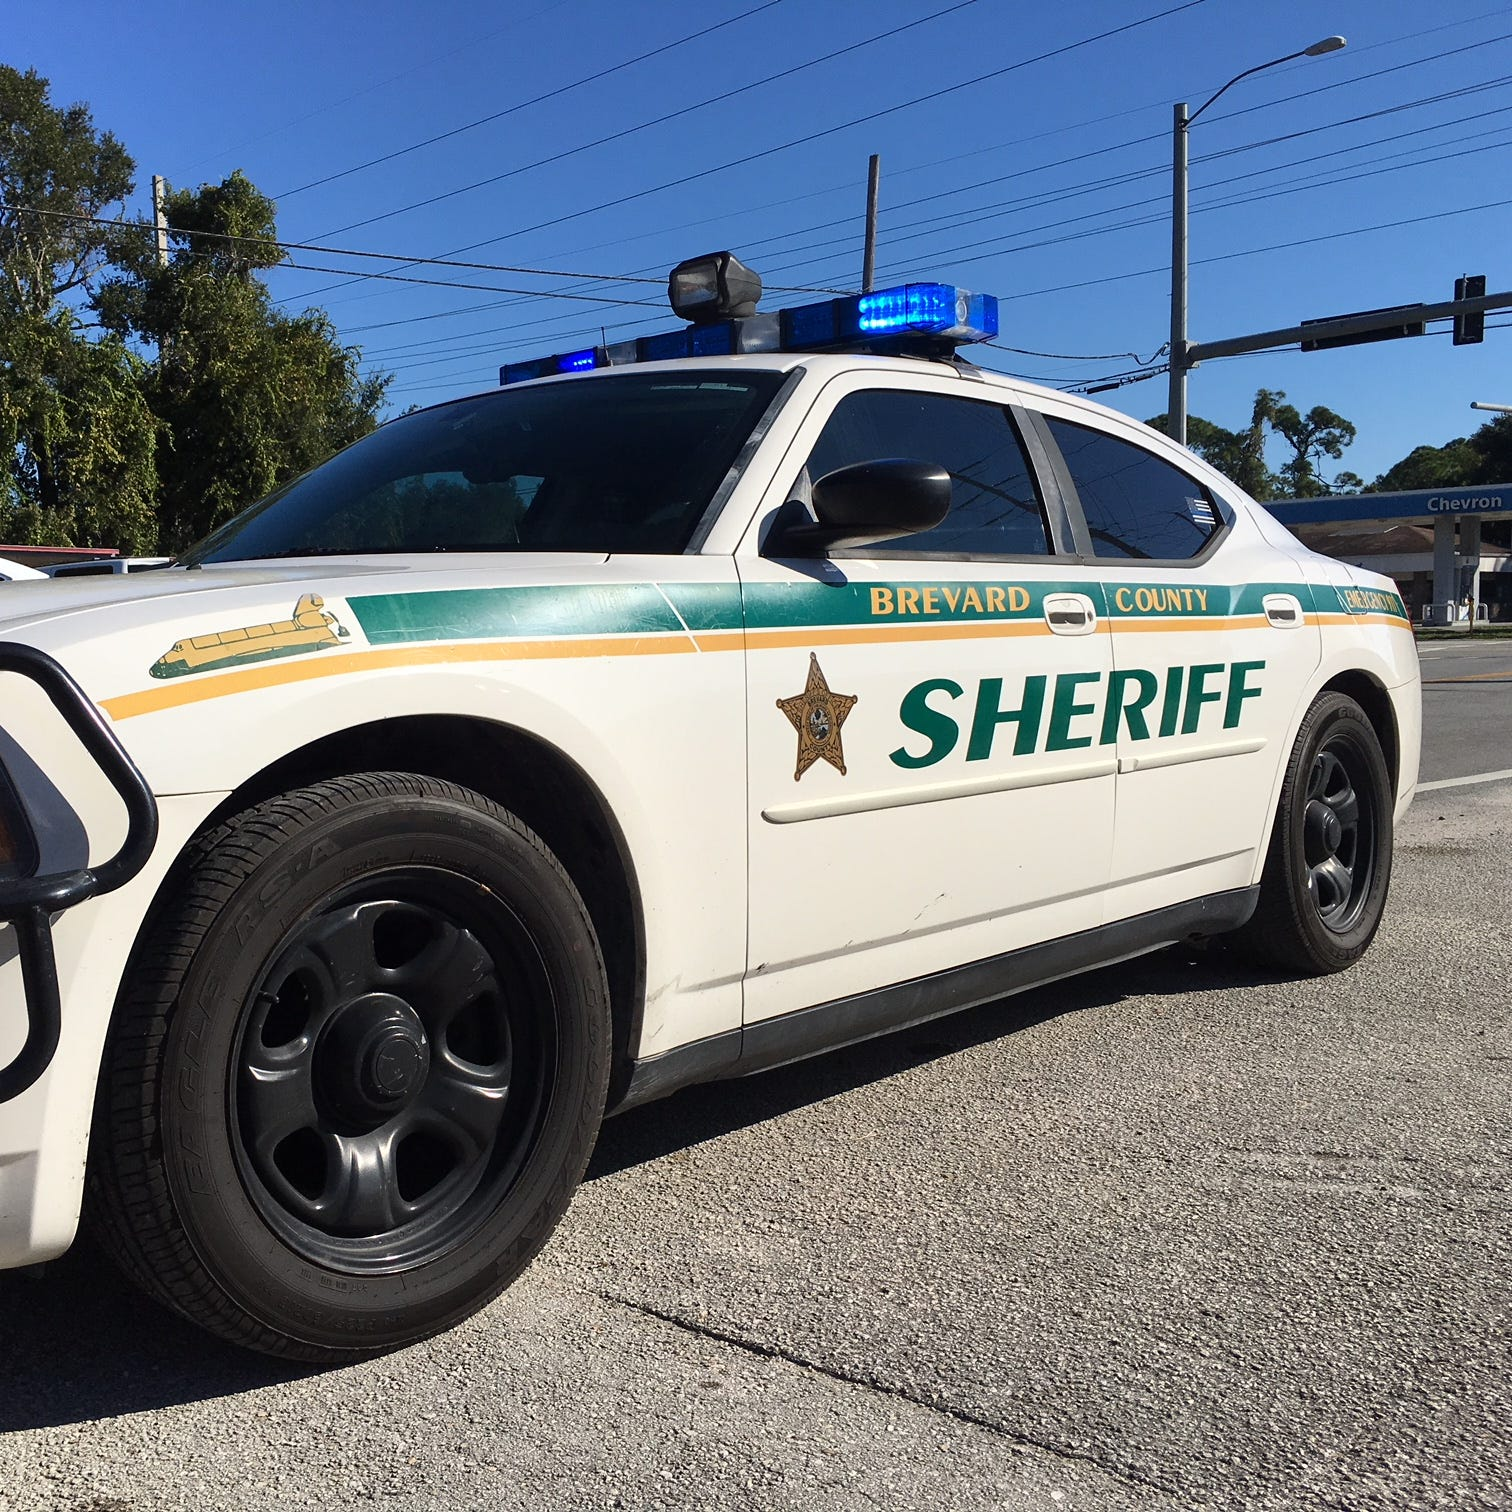 Off-duty Brevard deputy shot in Jacksonville incident, name withheld